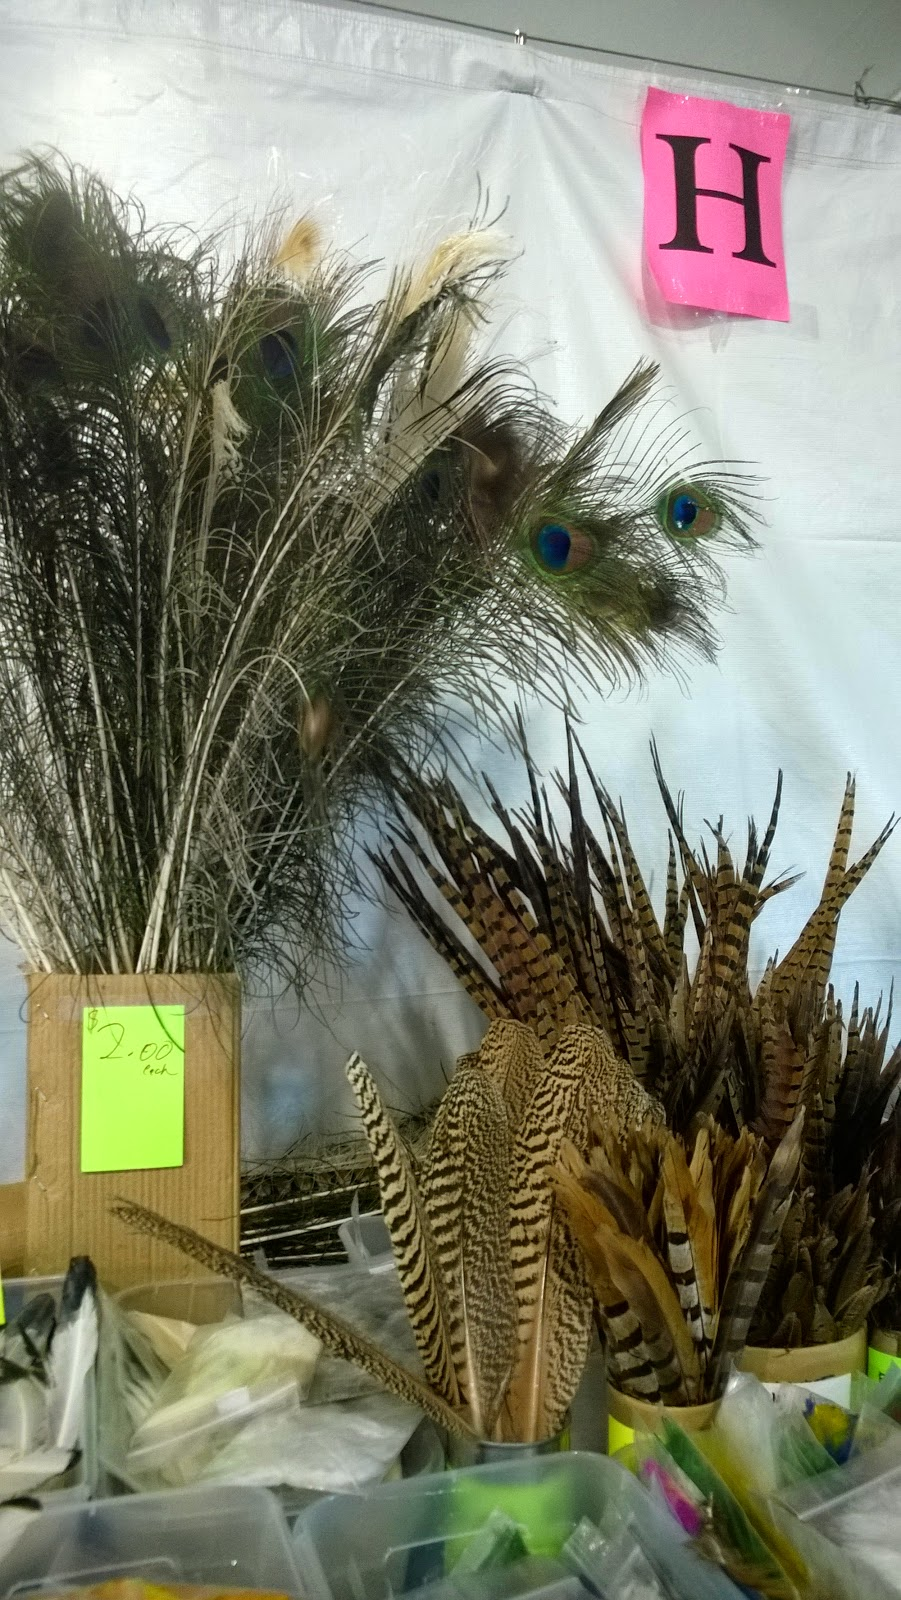 Peacock, pheasant and hawk feathers